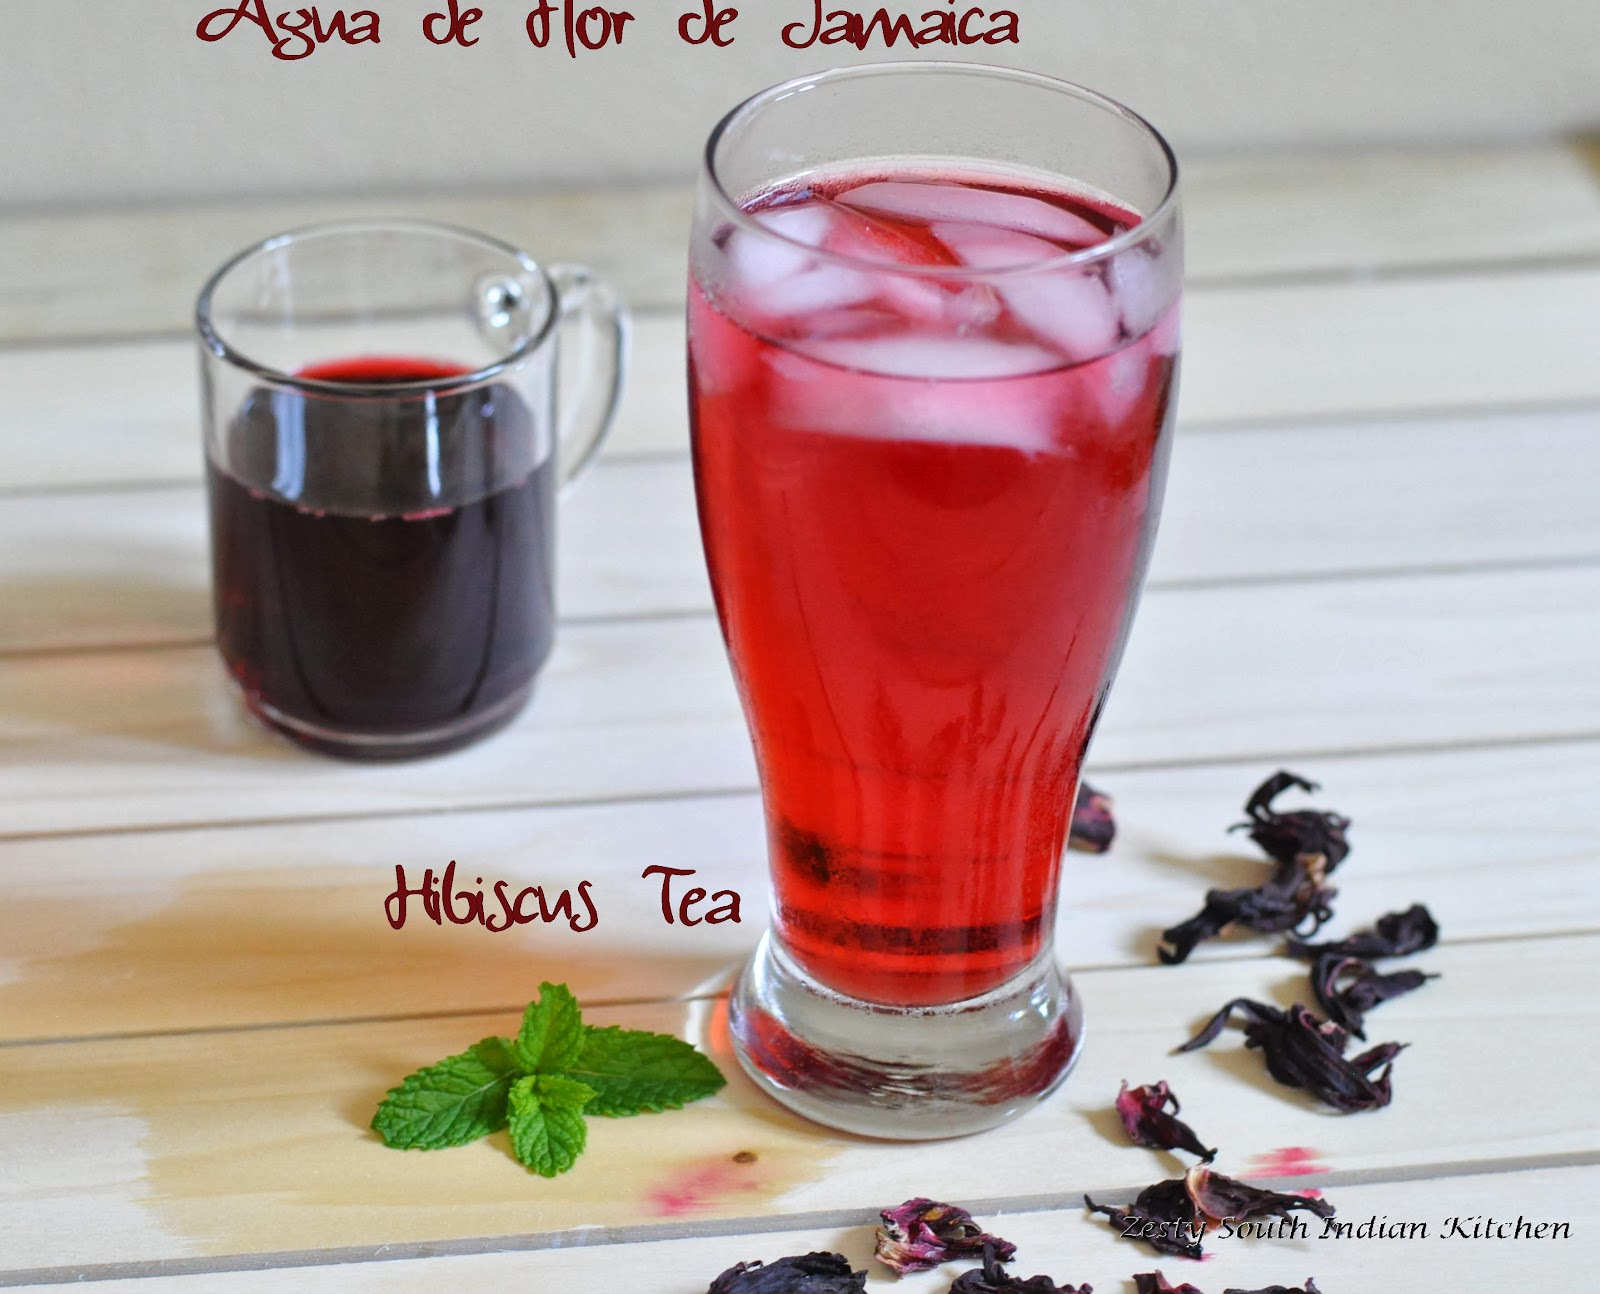 Agua flor de jamaicaagua fresca flor de jamaicahibiscus tea agua flor de jamaicaagua fresca flor de jamaicahibiscus tea zesty south indian kitchen izmirmasajfo